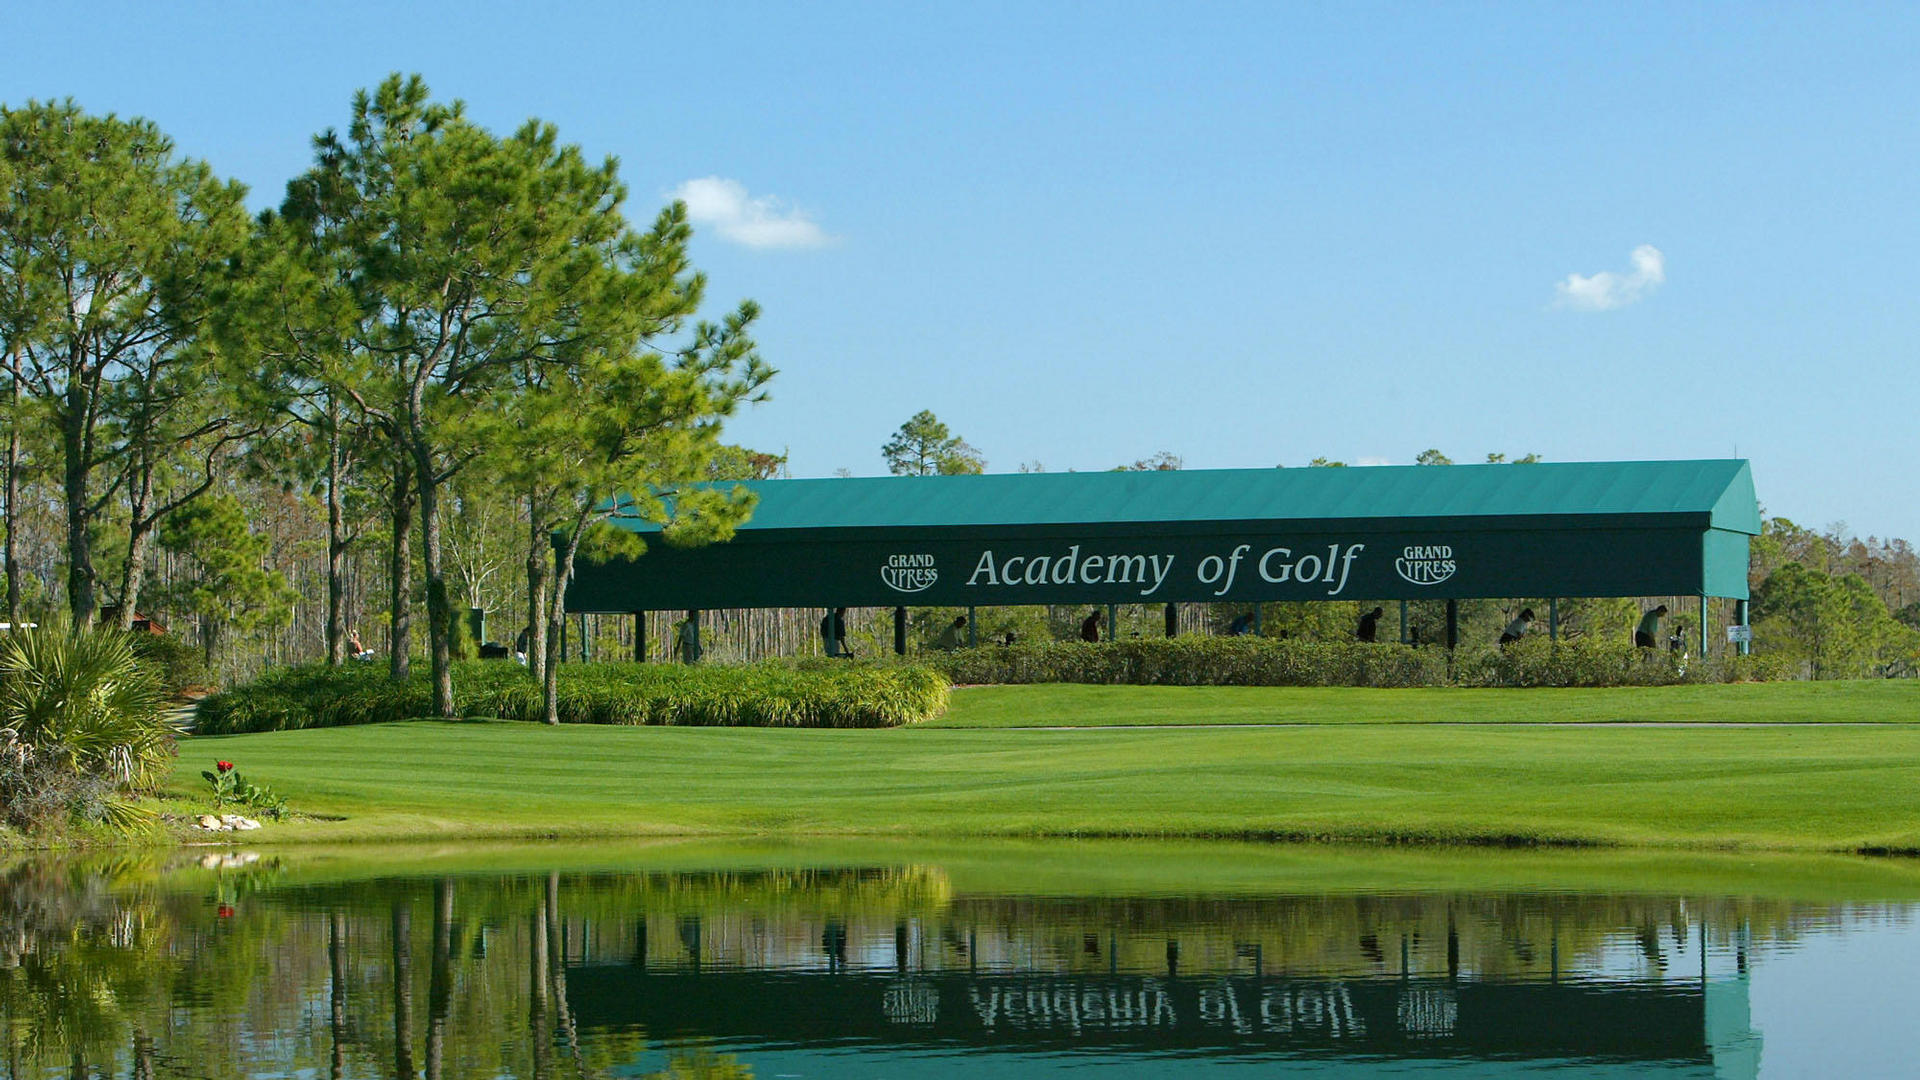 grand cypress golf academy entrance